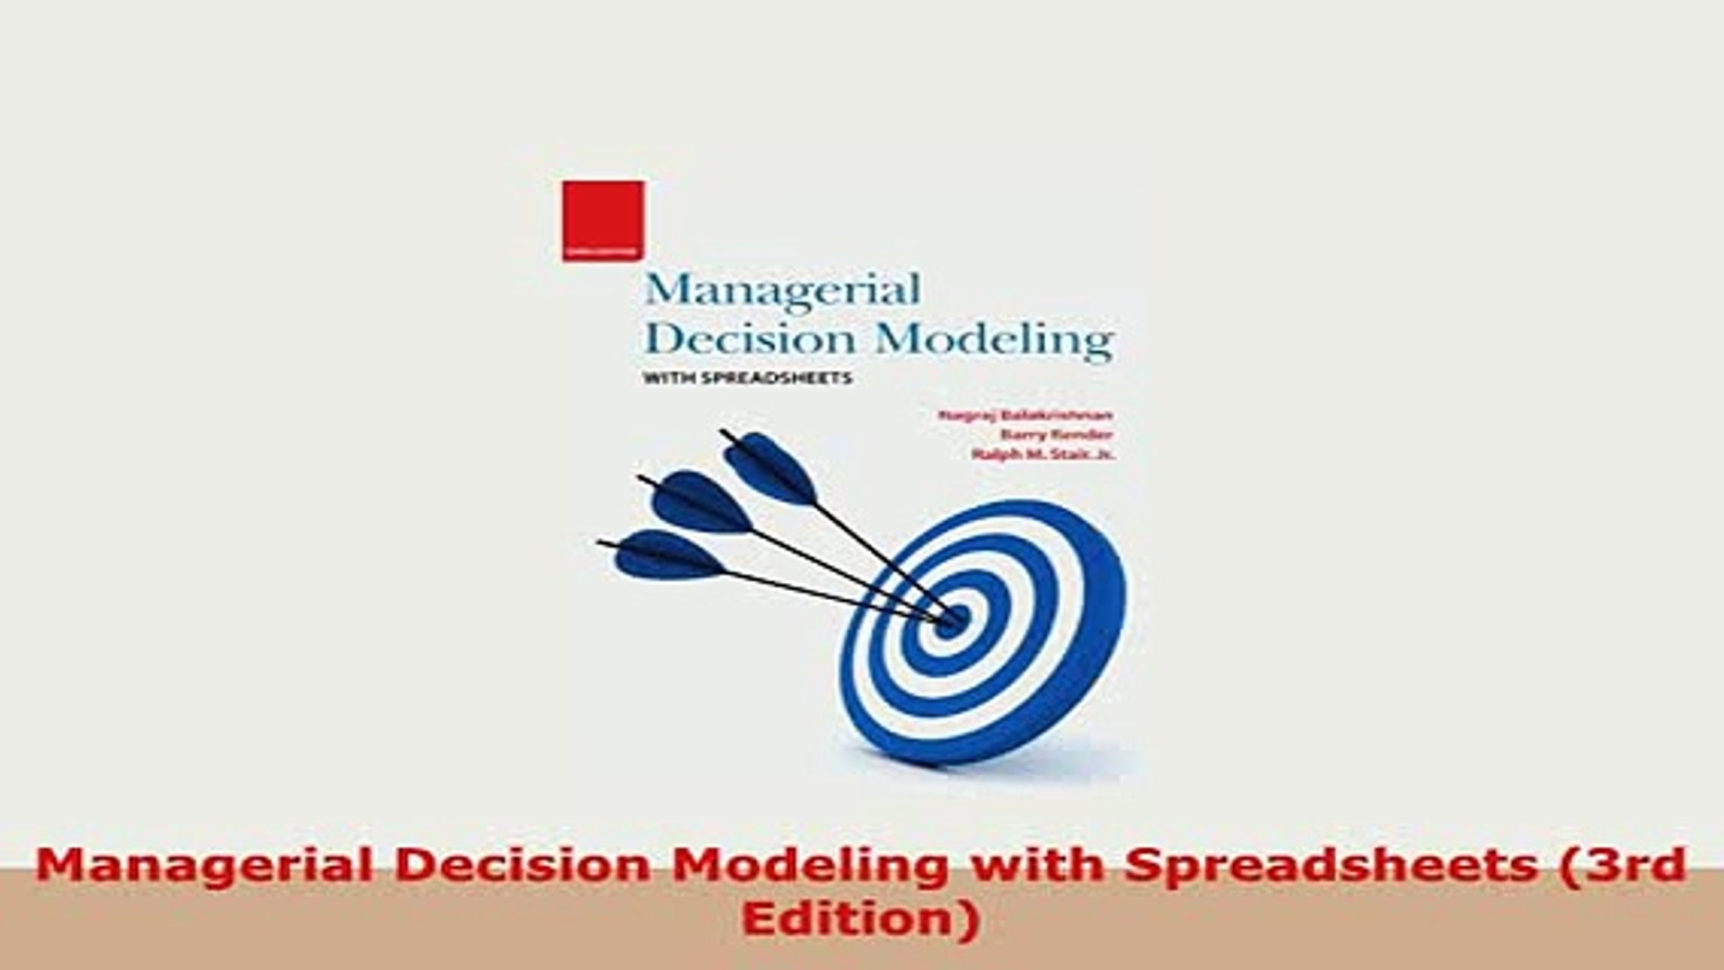 Managerial Decision Modeling With Spreadsheets 3Rd Edition Pdf Download With Pdf Managerial Decision Modeling With Spreadsheets 3Rd Edition Pdf